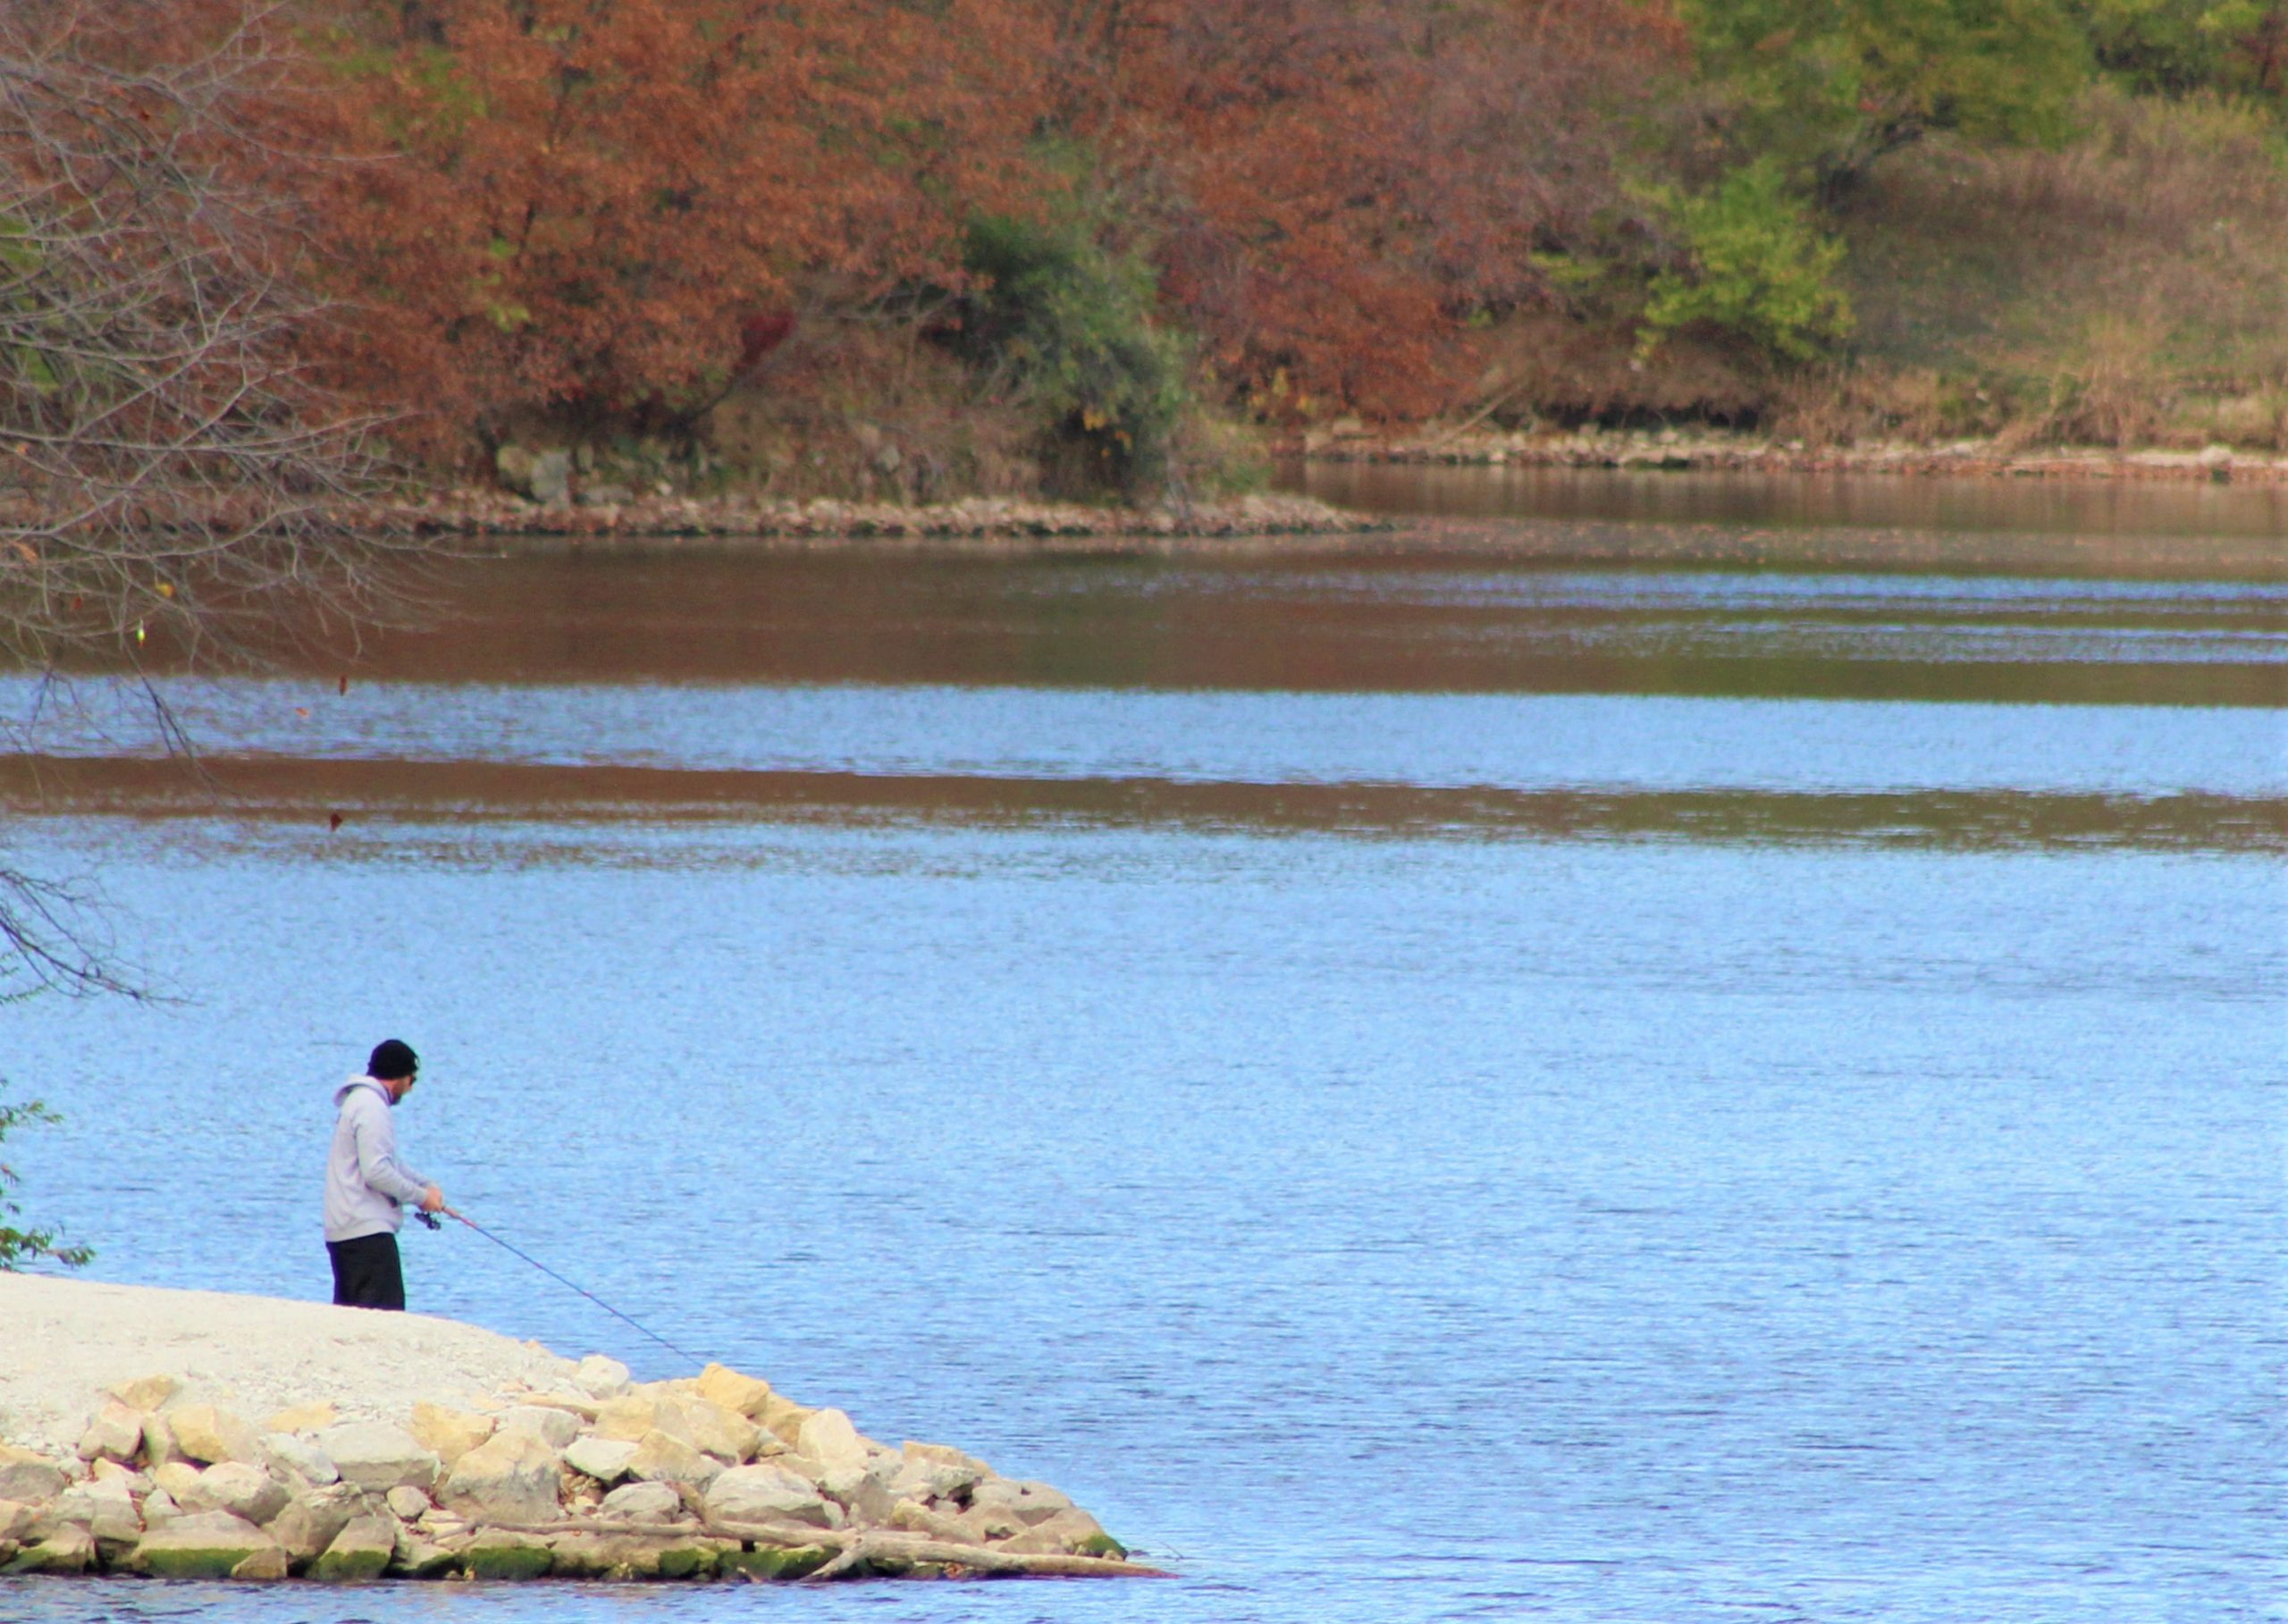 Pandemic-era rush to parks continues, hunting license sales up, fishing down